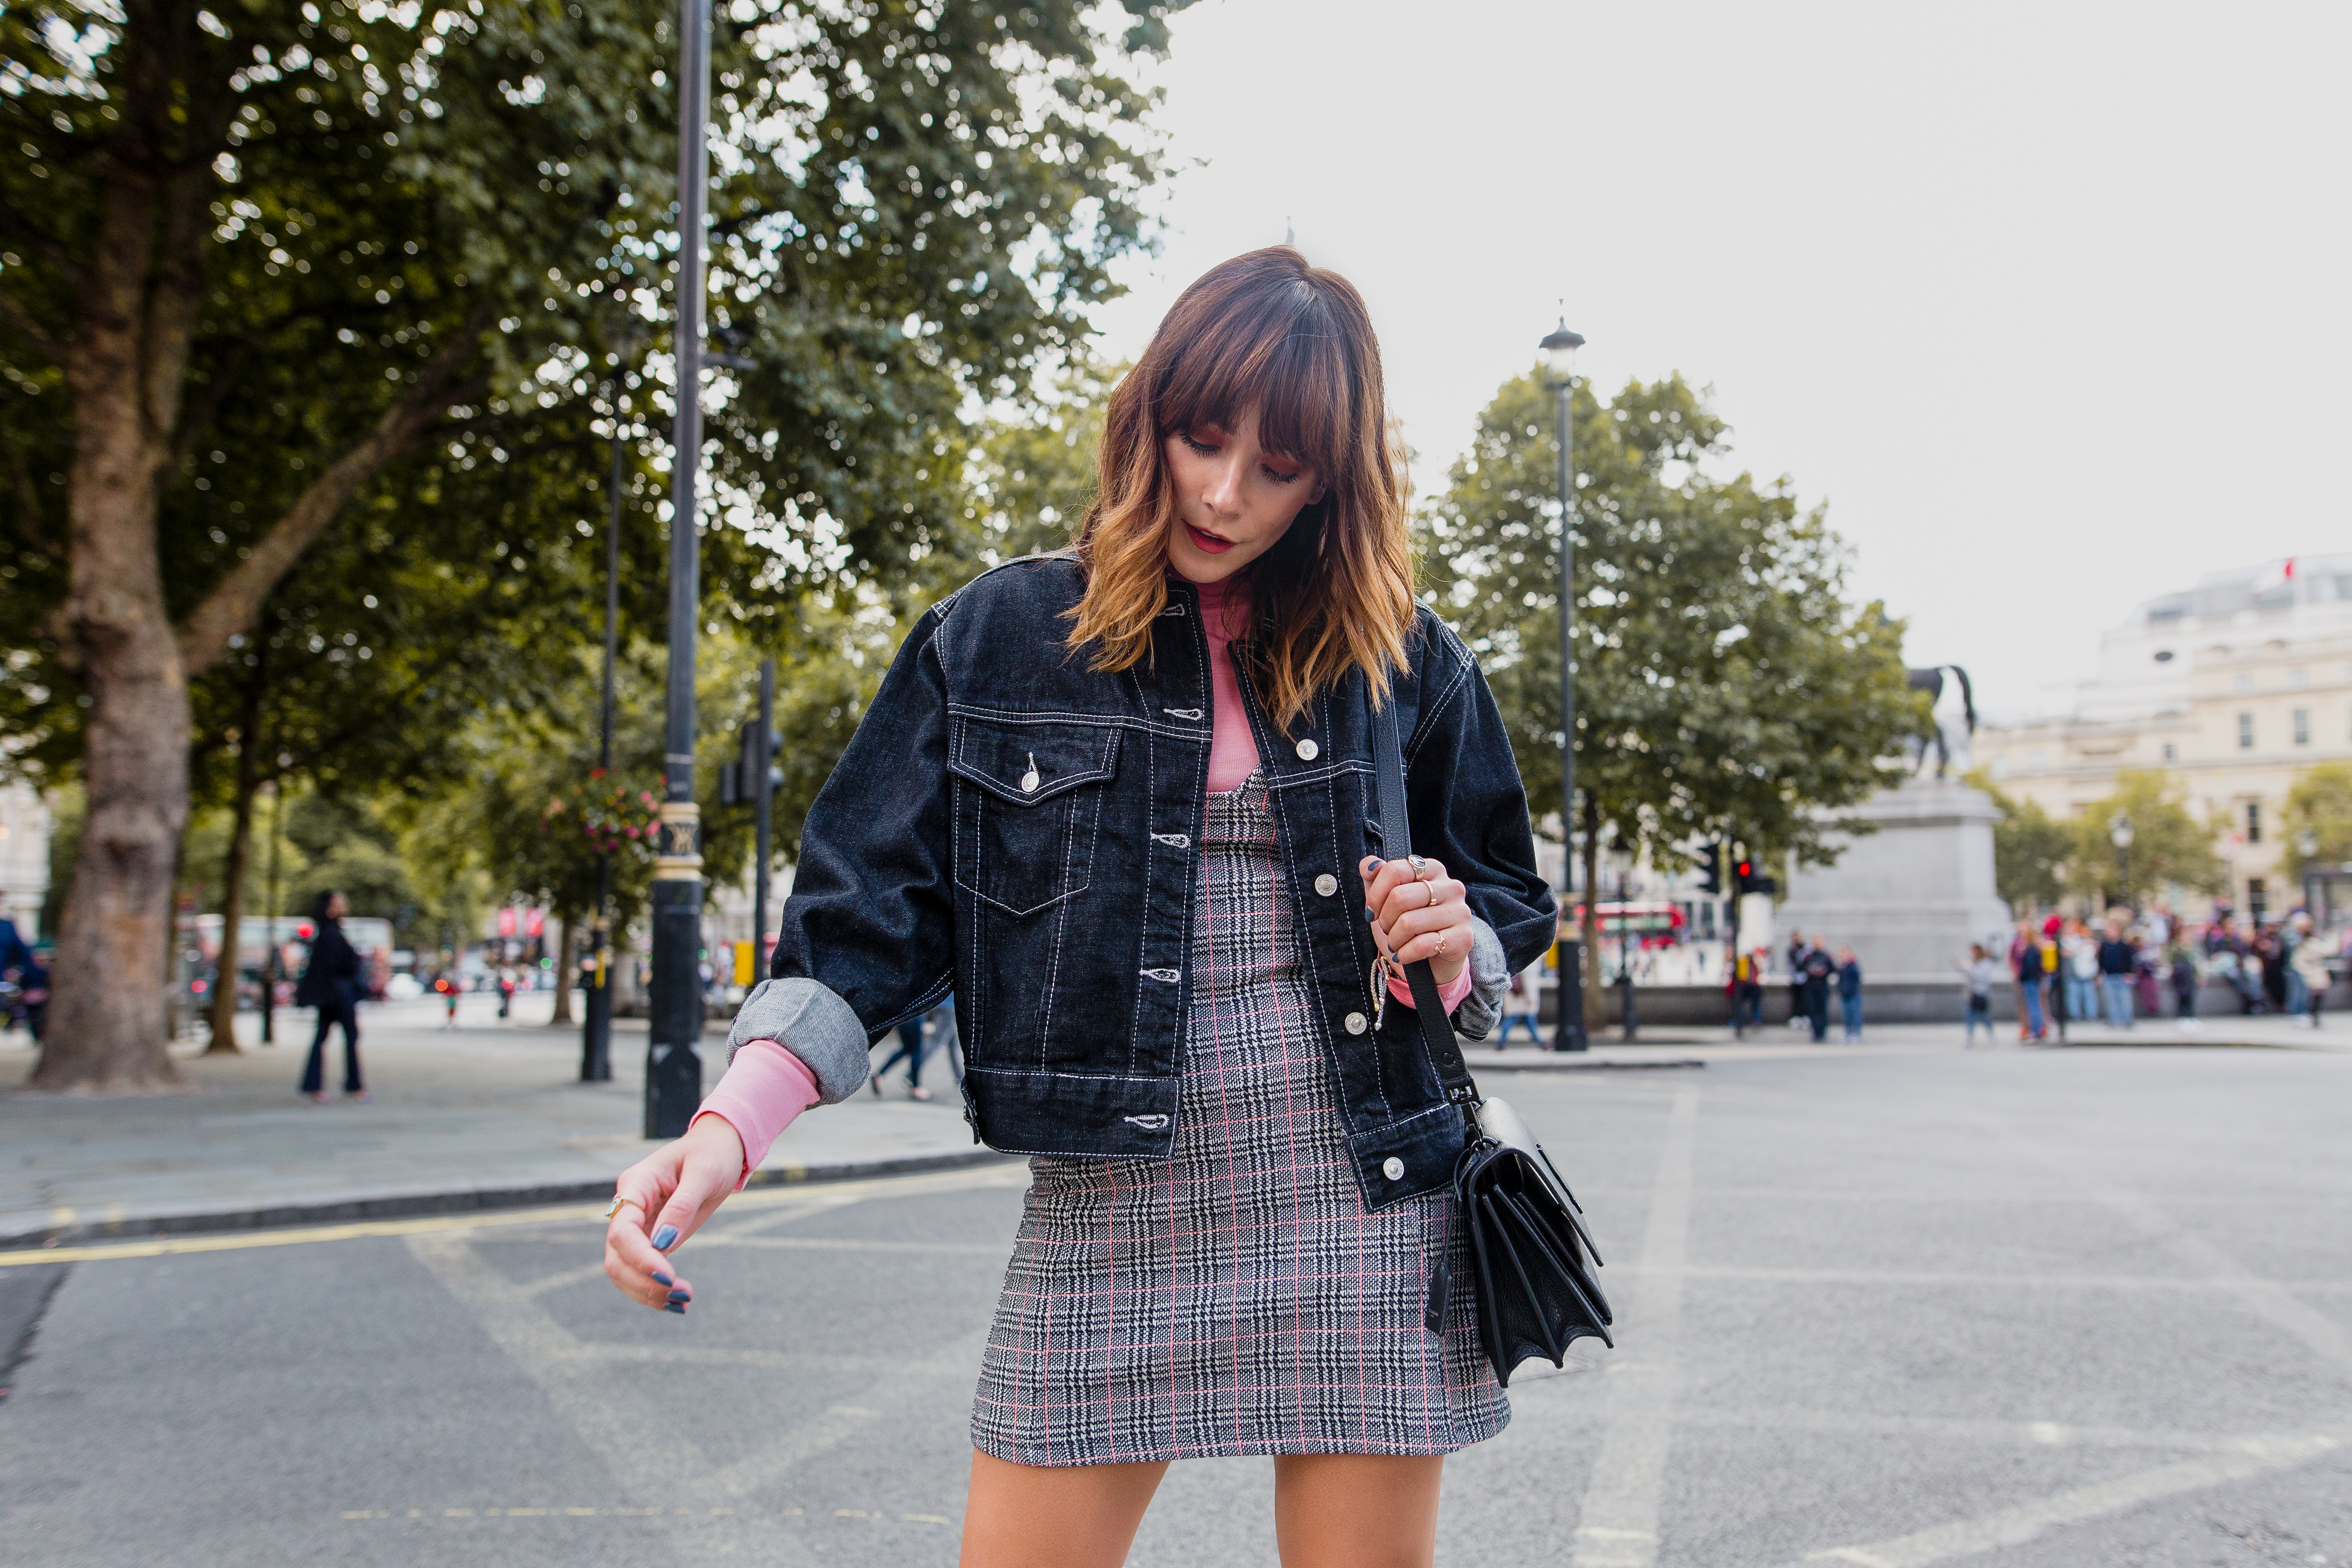 MEGAN ELLABY HOW TO DRESS UP A DENIM JACKET